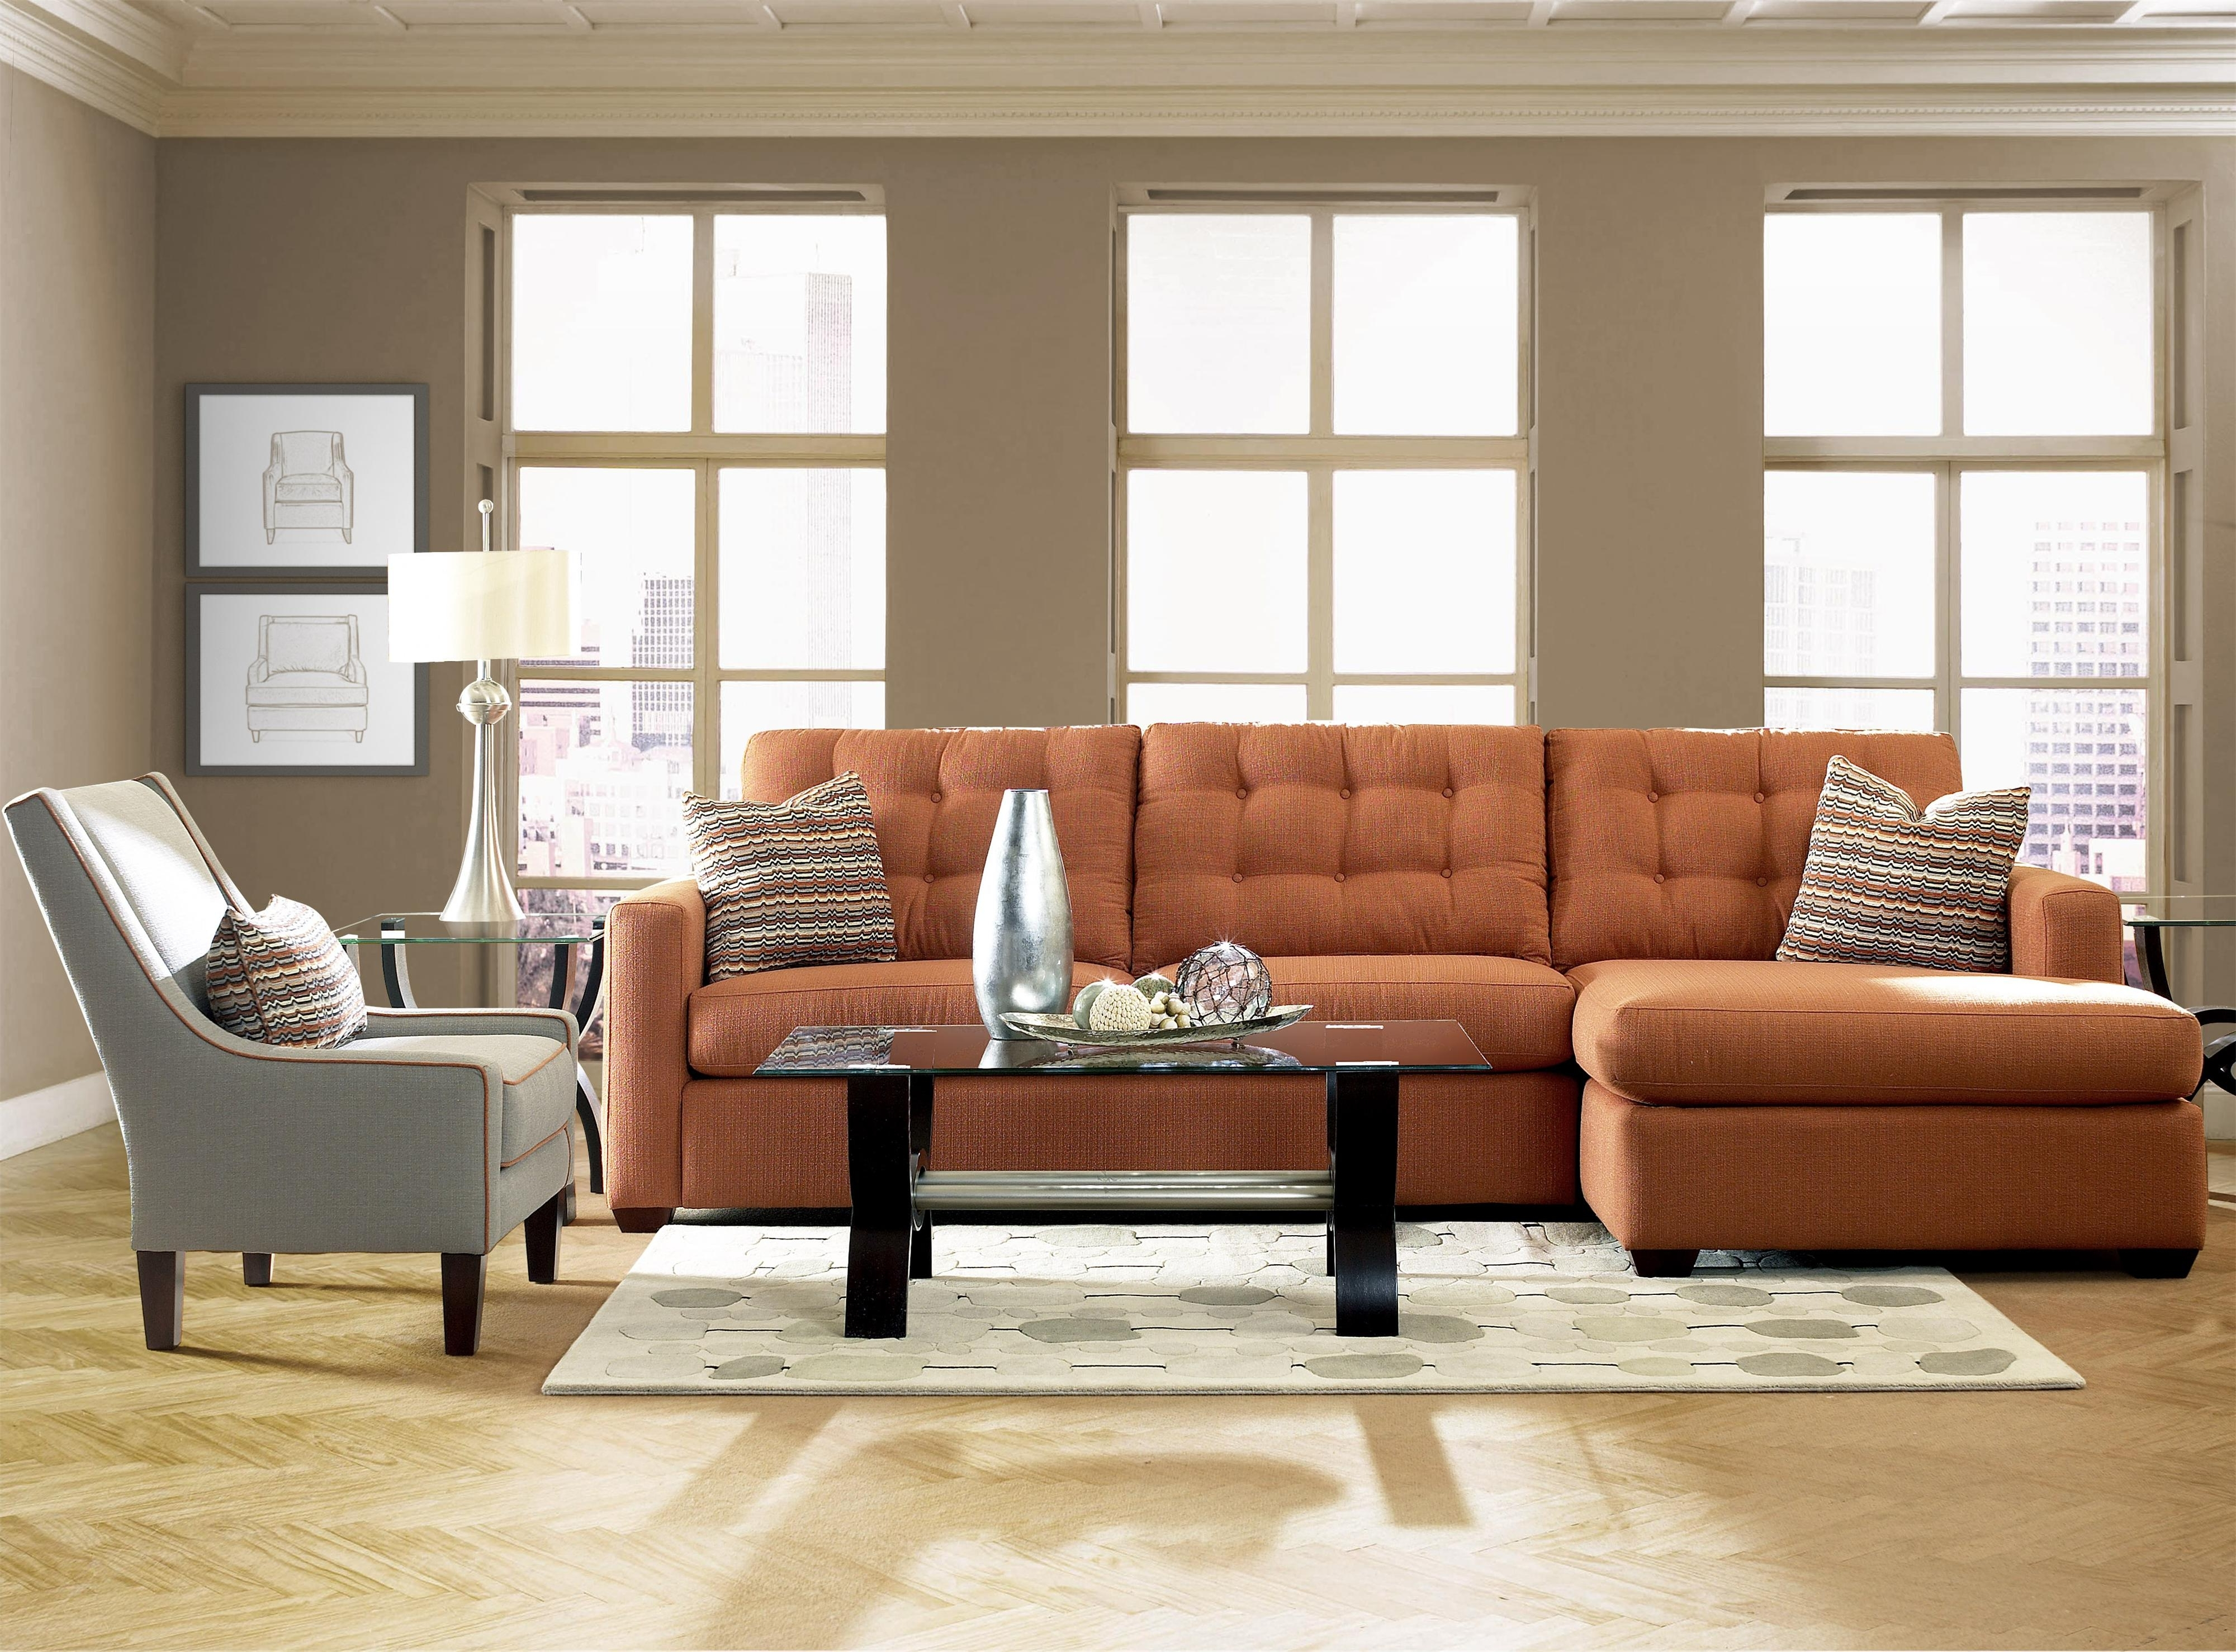 Famous Chaise Lounges For Living Room In Chaise Lounge Chairs Living Room Furniture • Lounge Chairs Ideas (View 9 of 15)